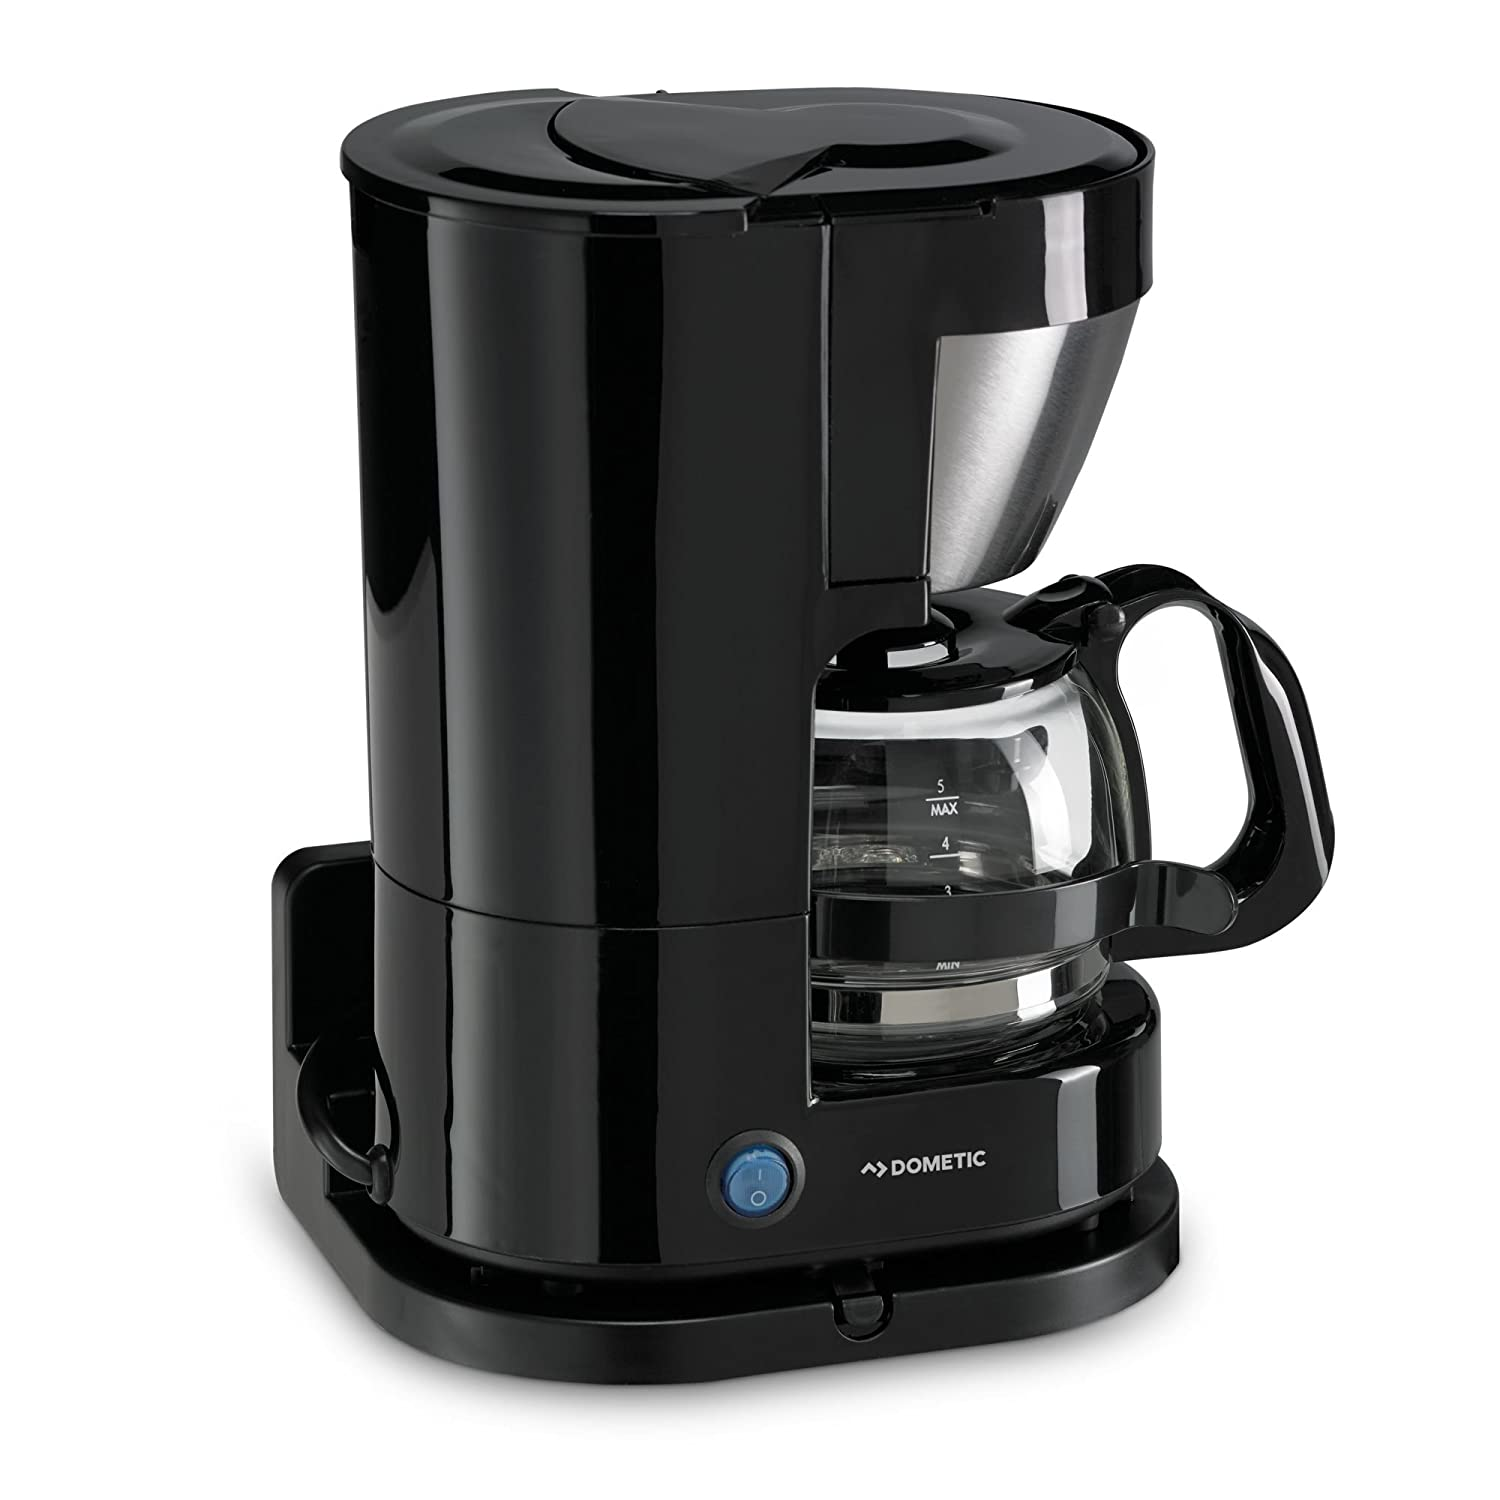 Dometic PerfectCoffee MC 054, Reise-Kaffeemaschine, 24 V, 300 W, fü r LKW, schwarz Dometic WAECO International GmbH 9600000341